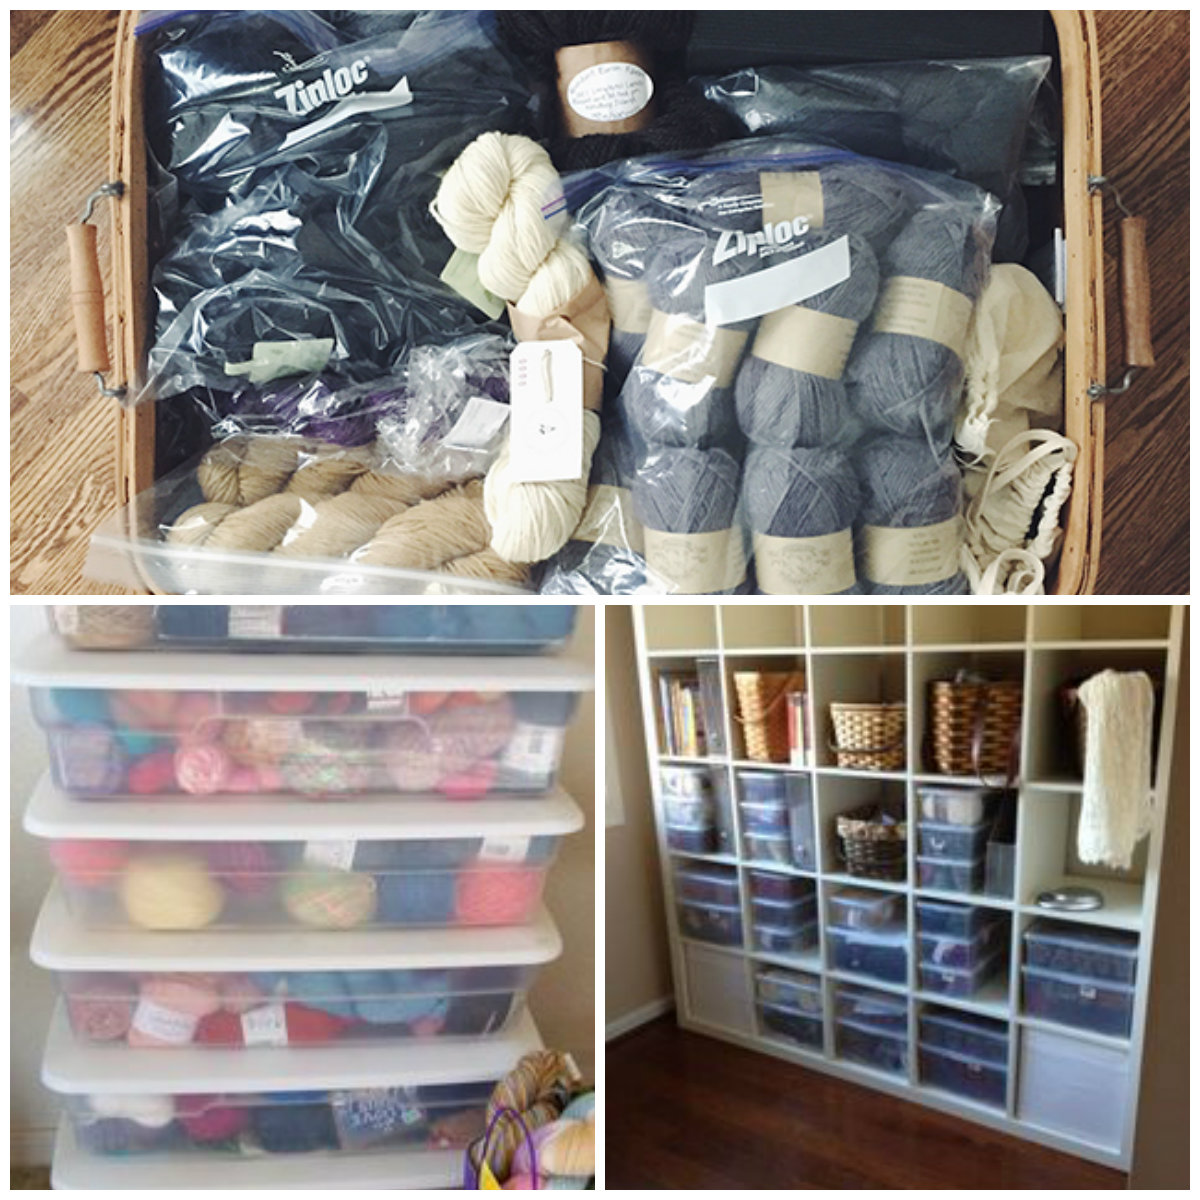 My yarn is contained safe and secure. I highly recommend getting one to keep your knitting easy. yarn storage. Storage Containers & Essential Tools for Knitting: 6 Tools to Make Knitting Easier